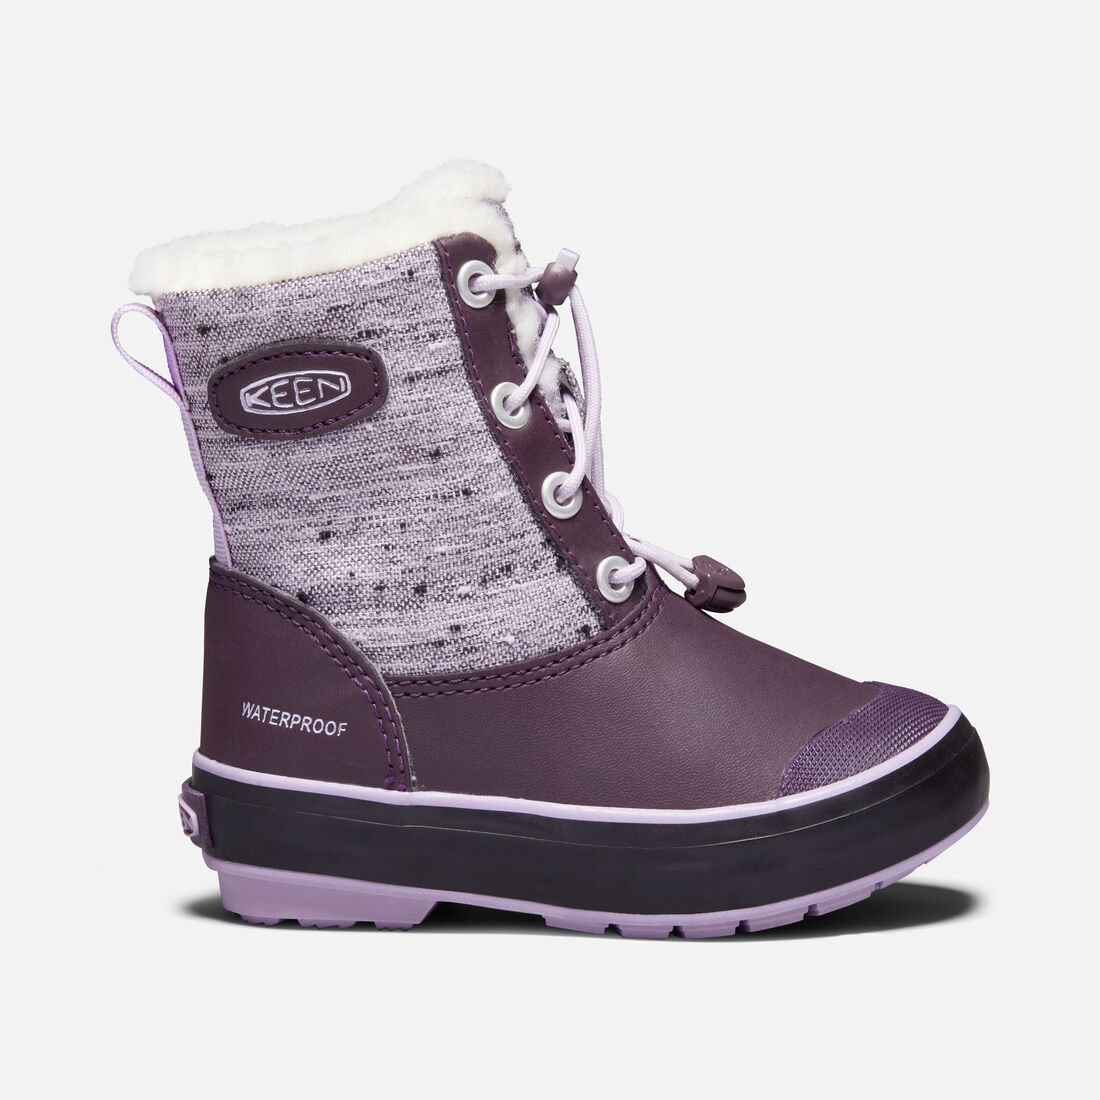 Little Kids' Elsa Boot in Plum/Pastel Lilac - large view.